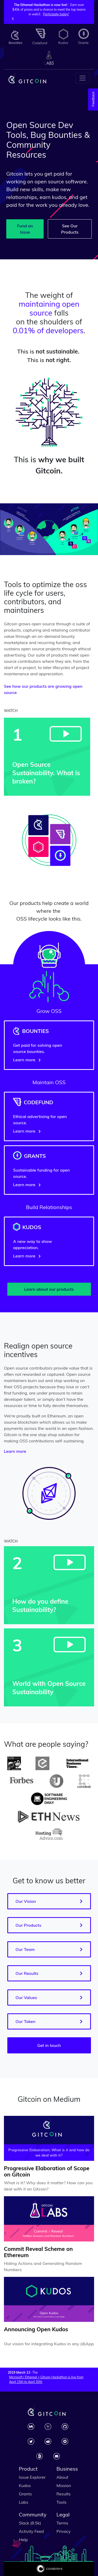 Example of Design for Business & Industrial, Mobile Landing Page by gitcoin.co | Mobile Landing Page Design